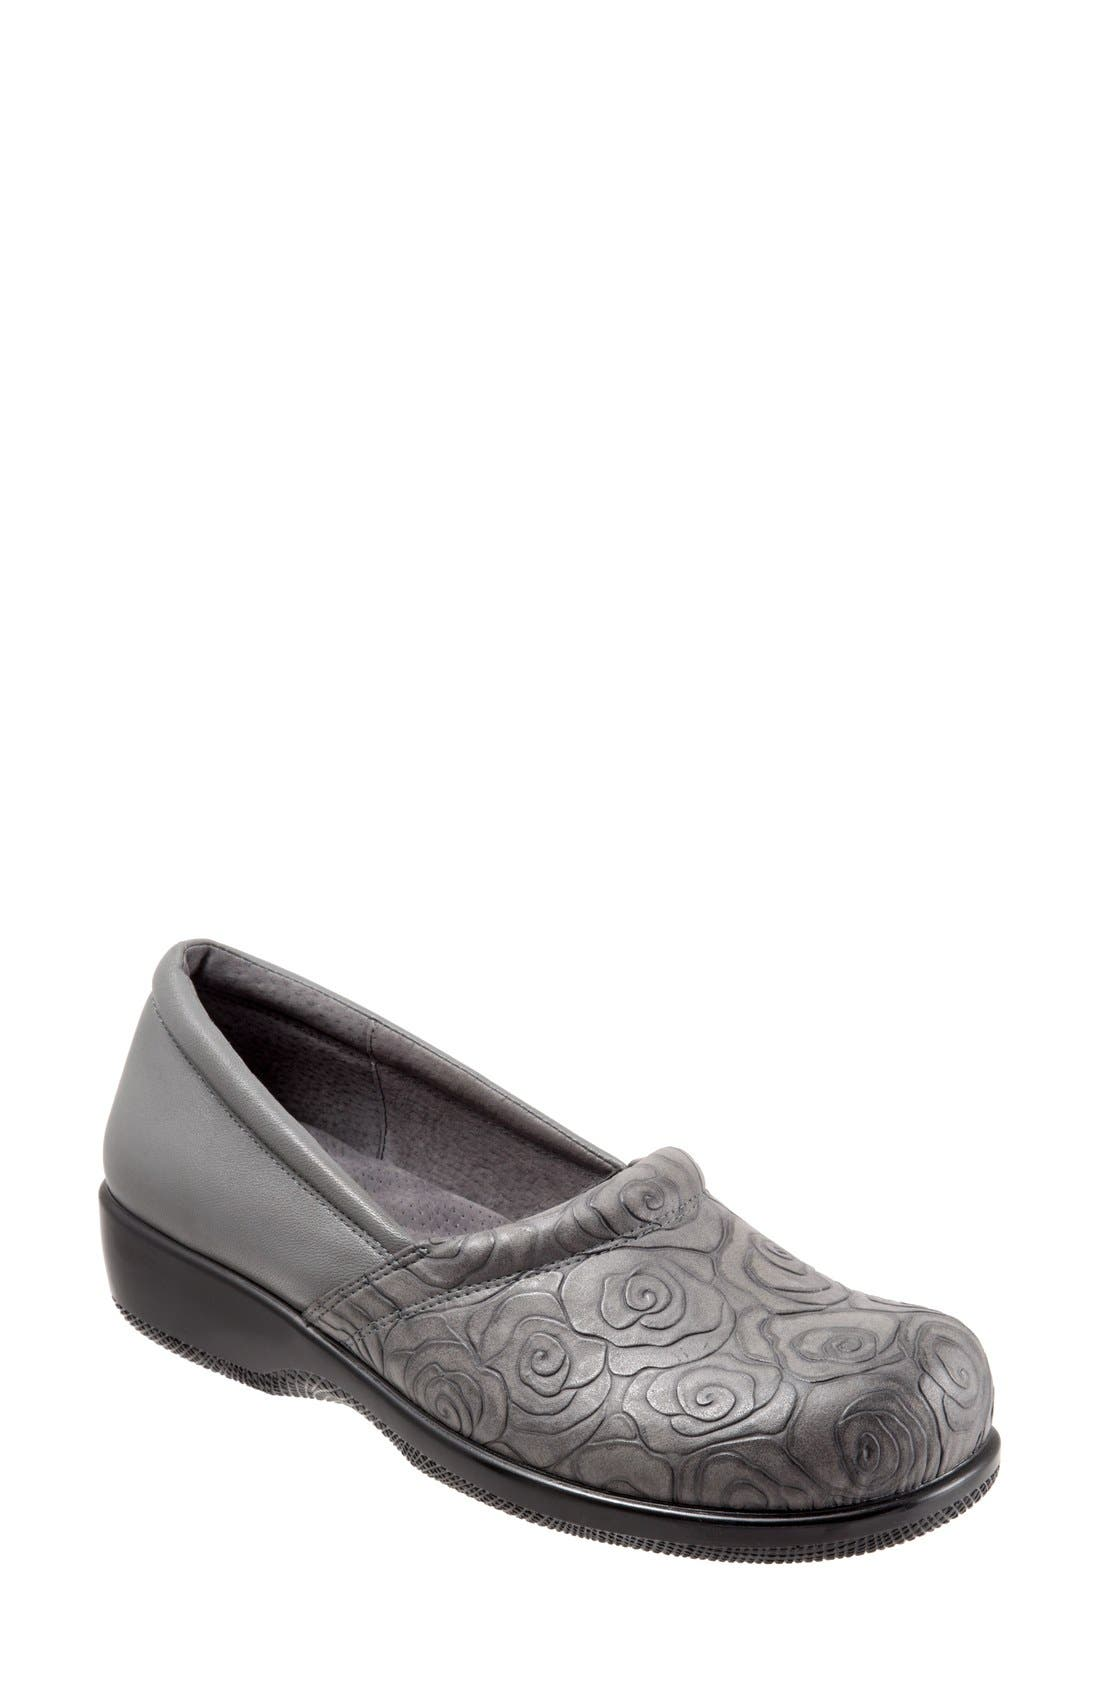 'Adora' Slip-On,                         Main,                         color, GREY ROSE LEATHER